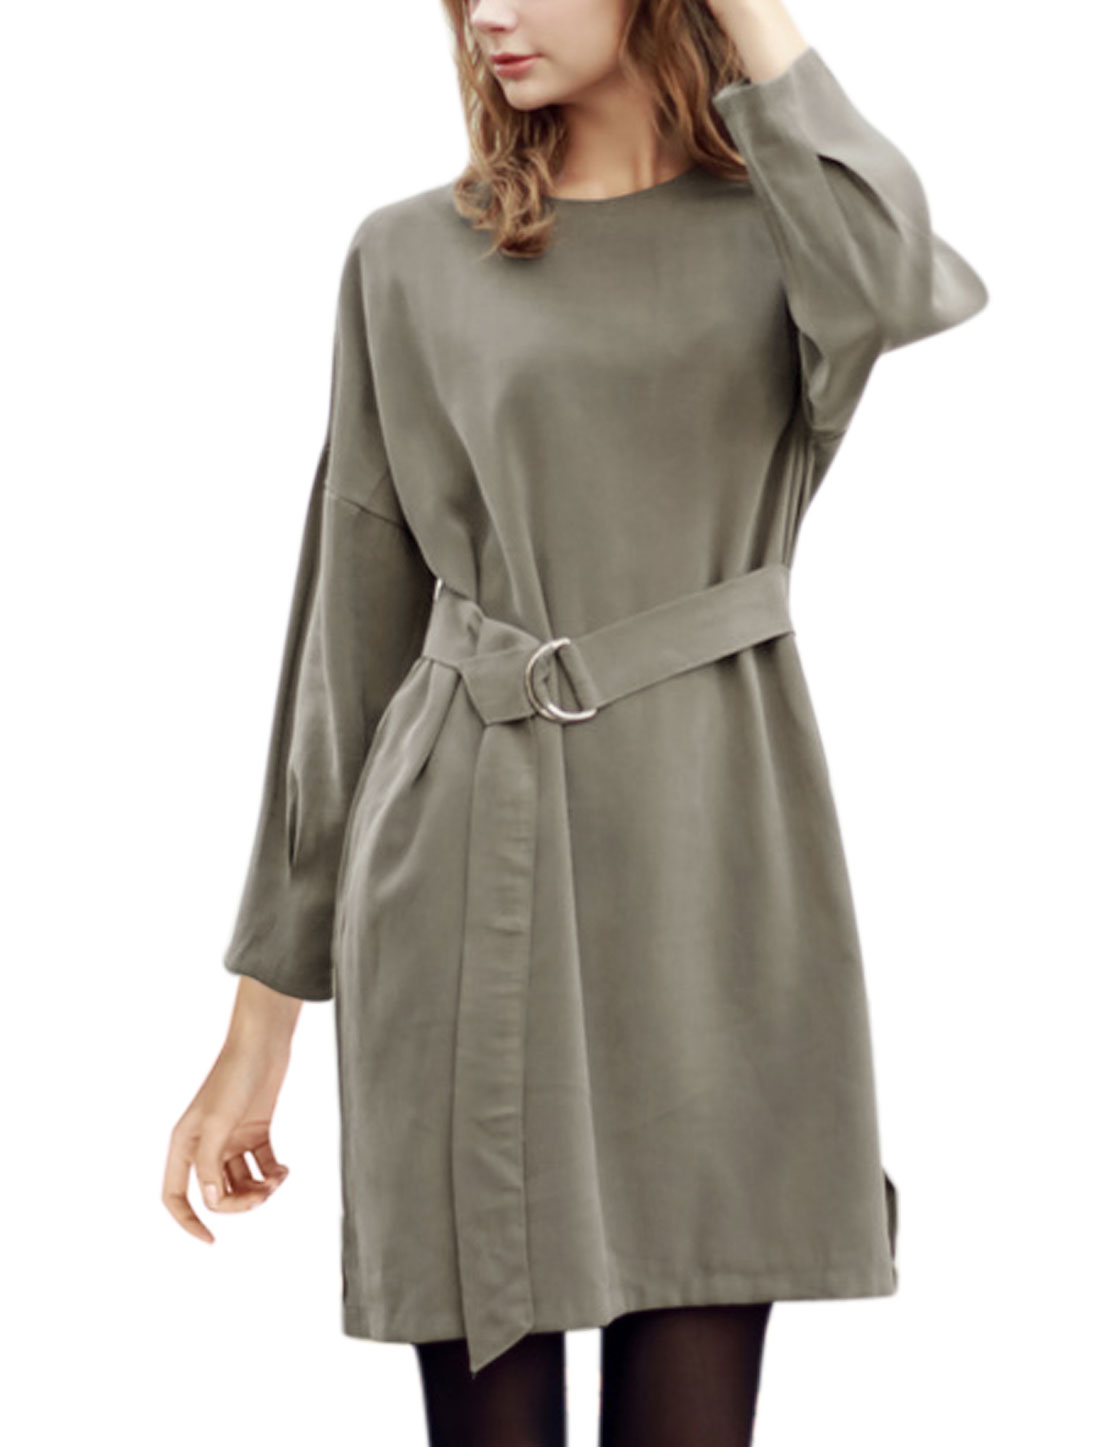 Women Crew Neck Long Sleeves Loose Tunic Dress w Belt Gray S